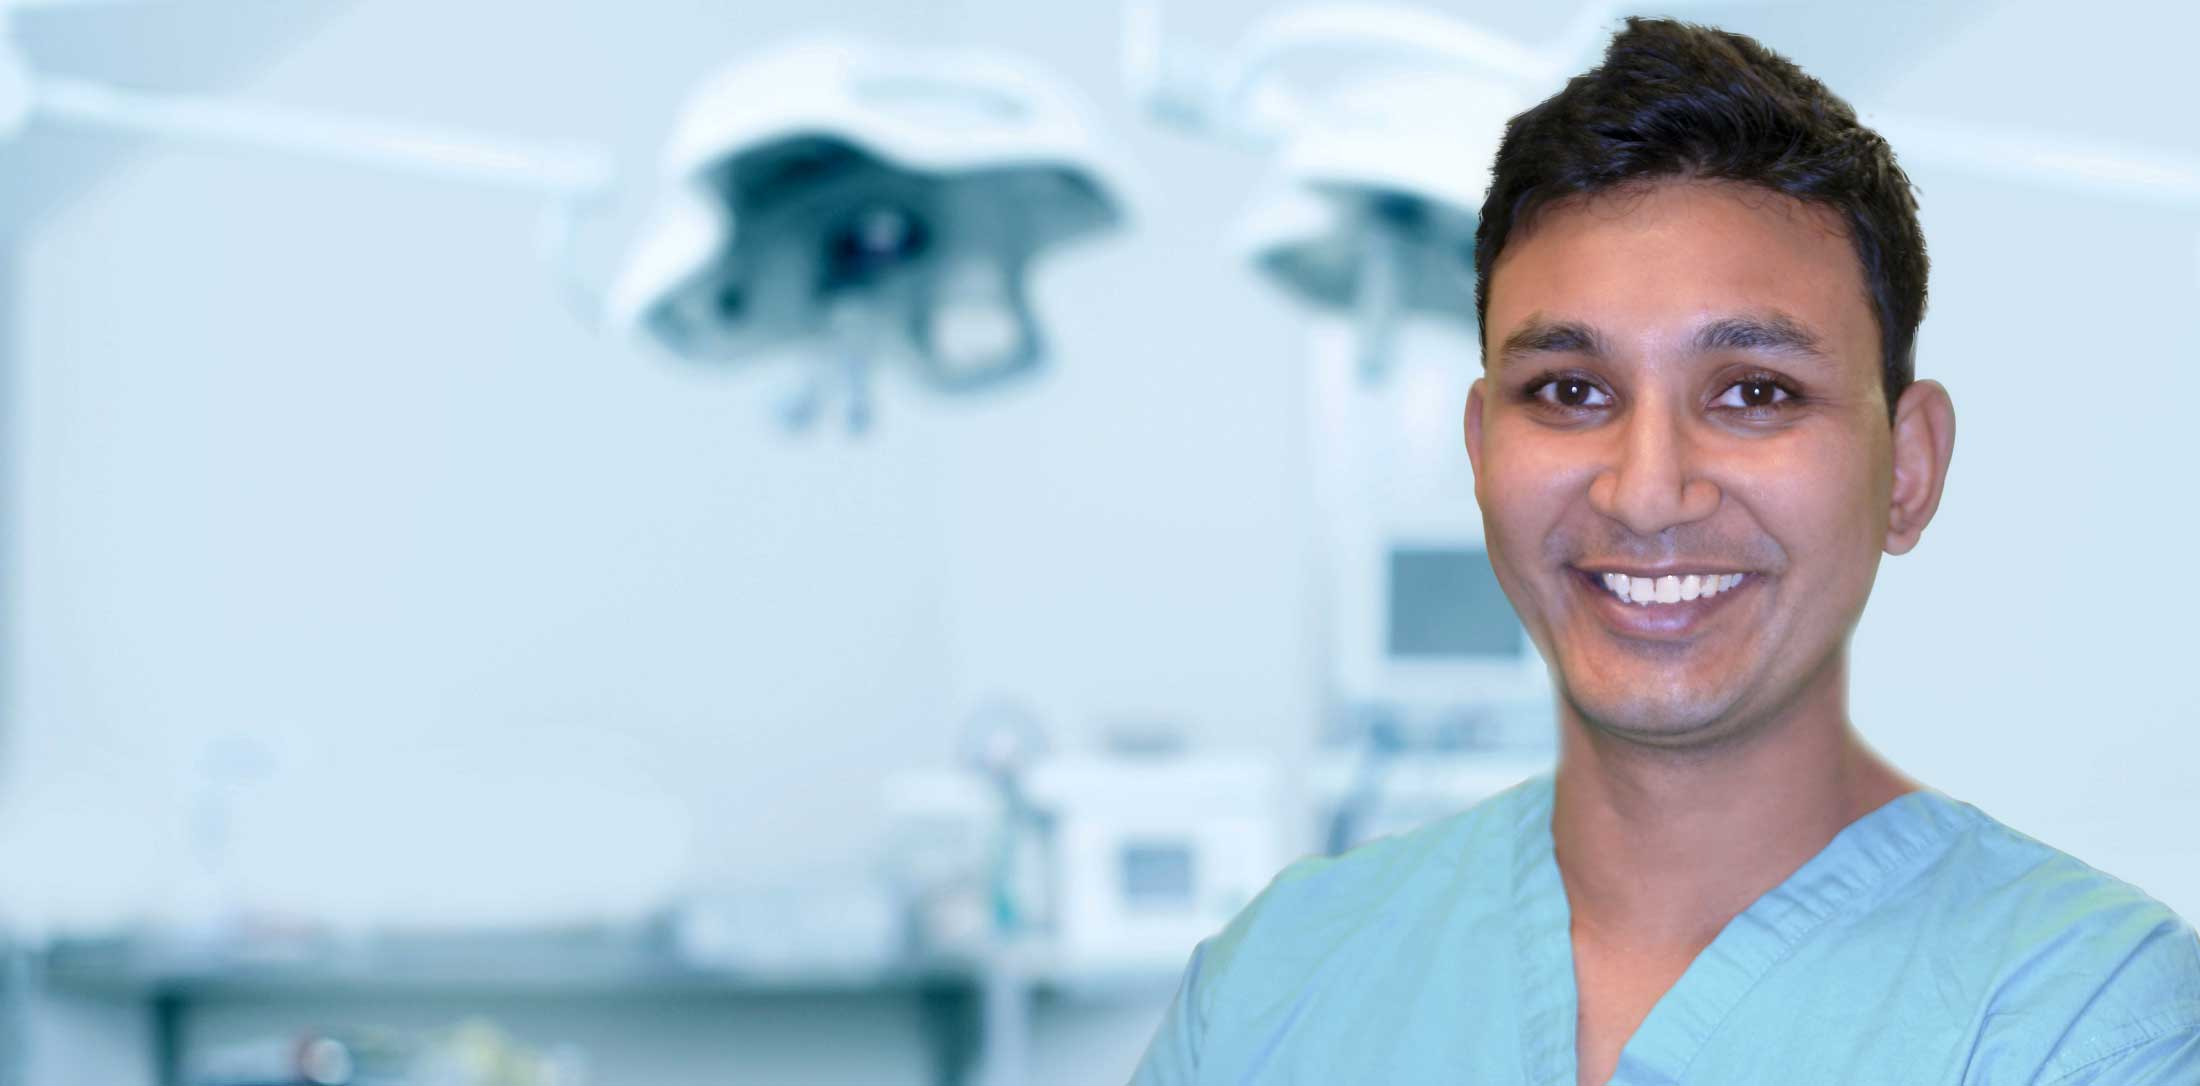 Private Cataract Surgery and Glaucoma Treatment by Mr Pavi Agrawal, Consultant Ophthalmic Surgeon